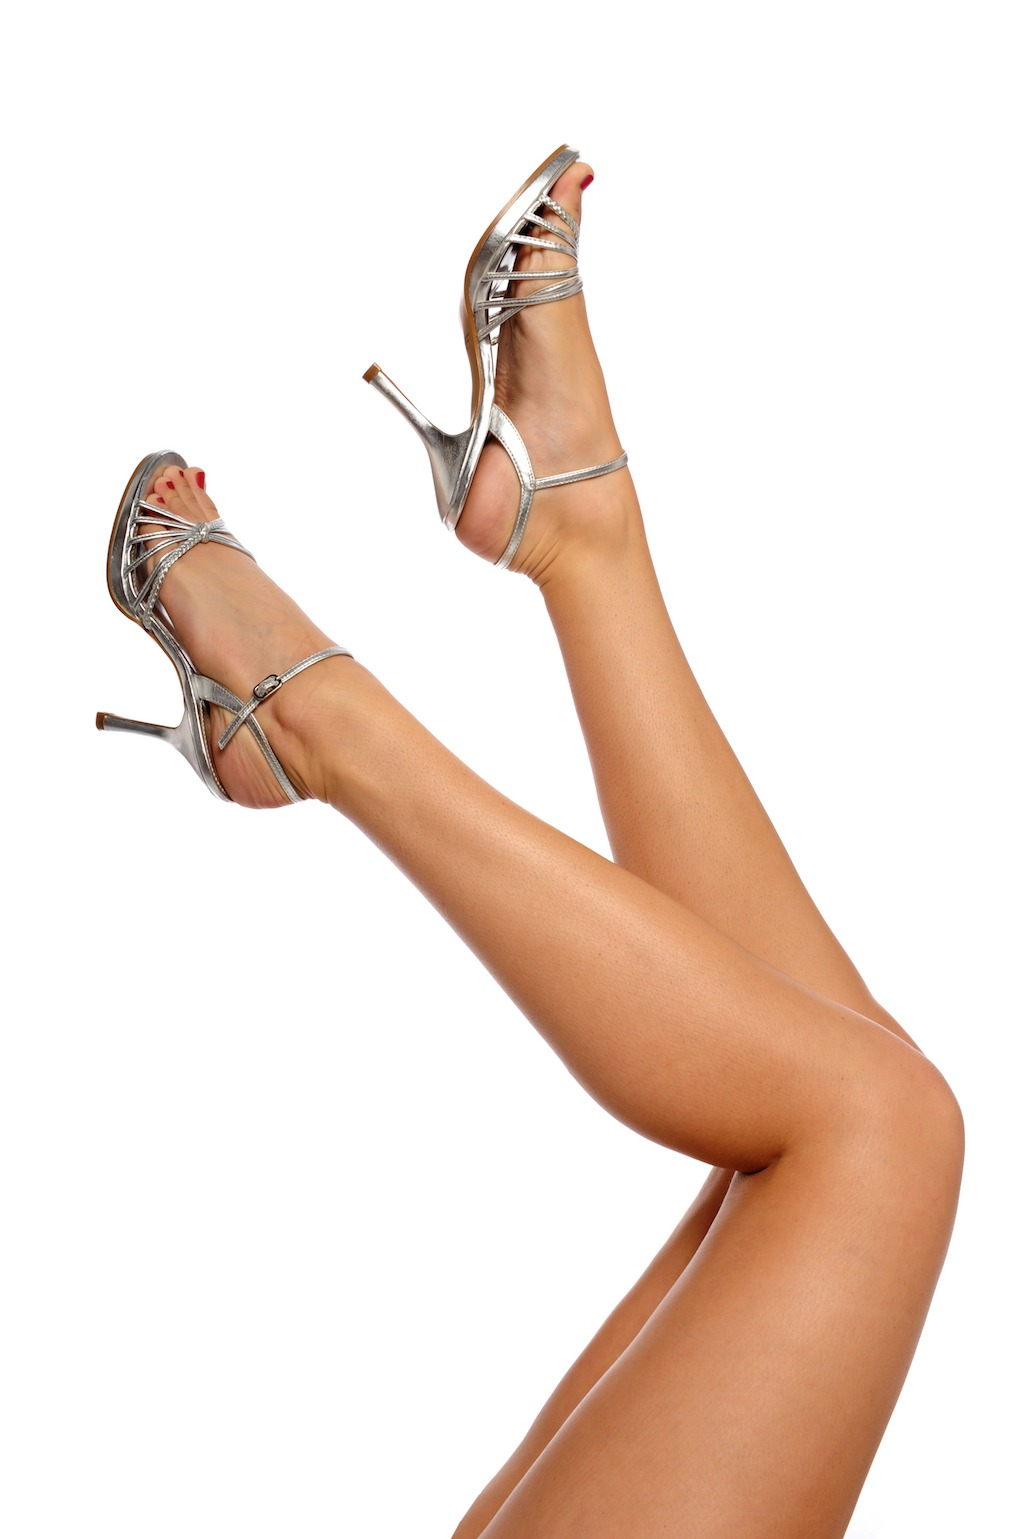 laser hair removal encino | Amathair co